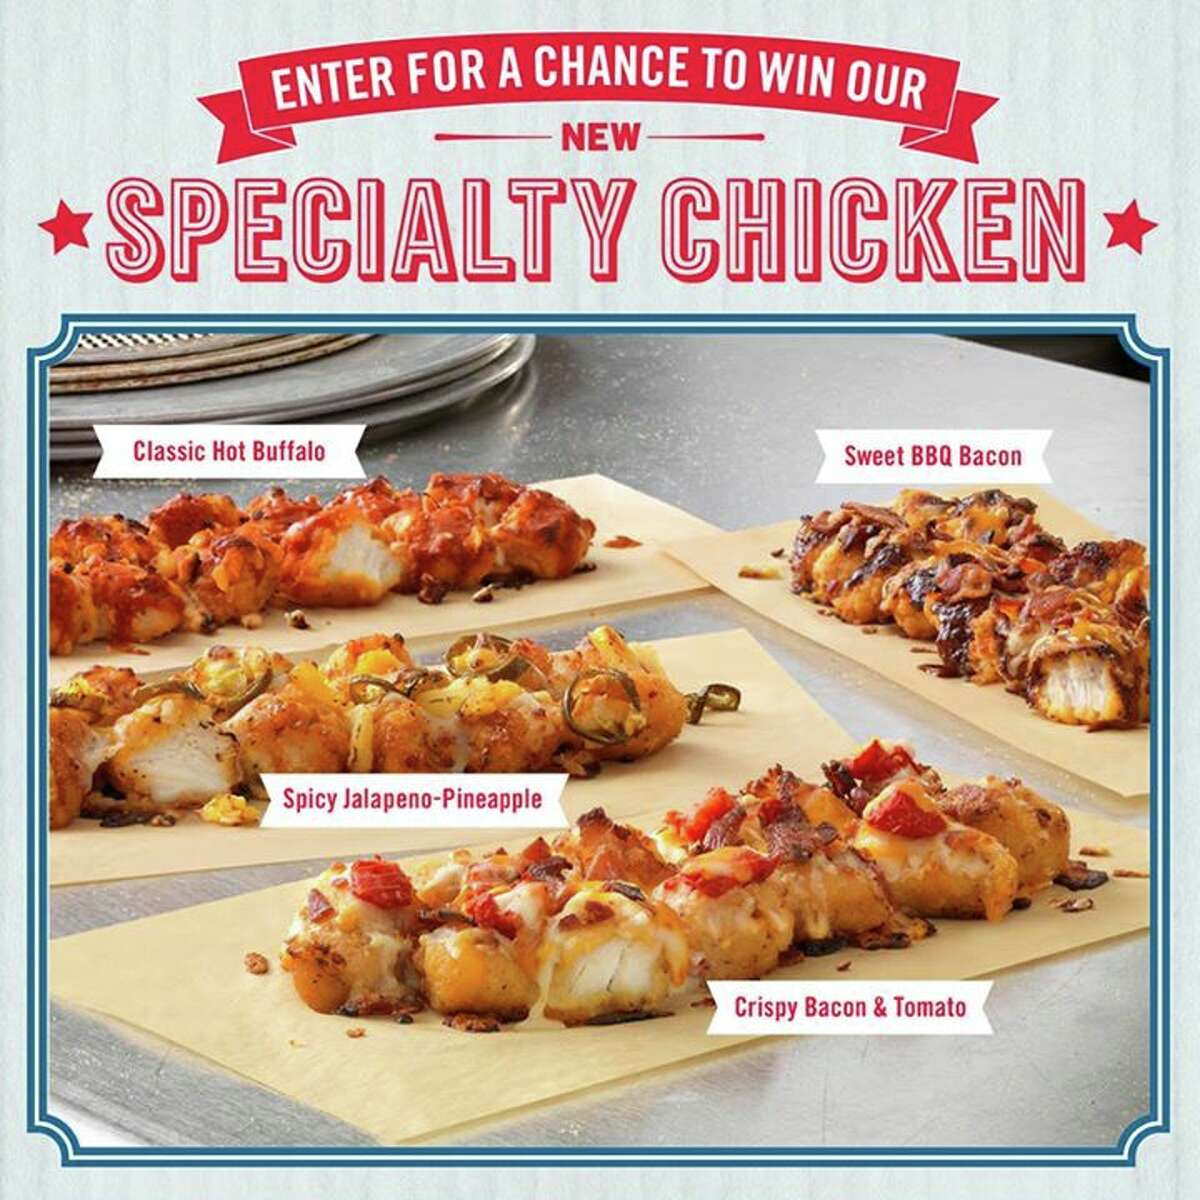 Domino's Pizza announced in June the launch of the